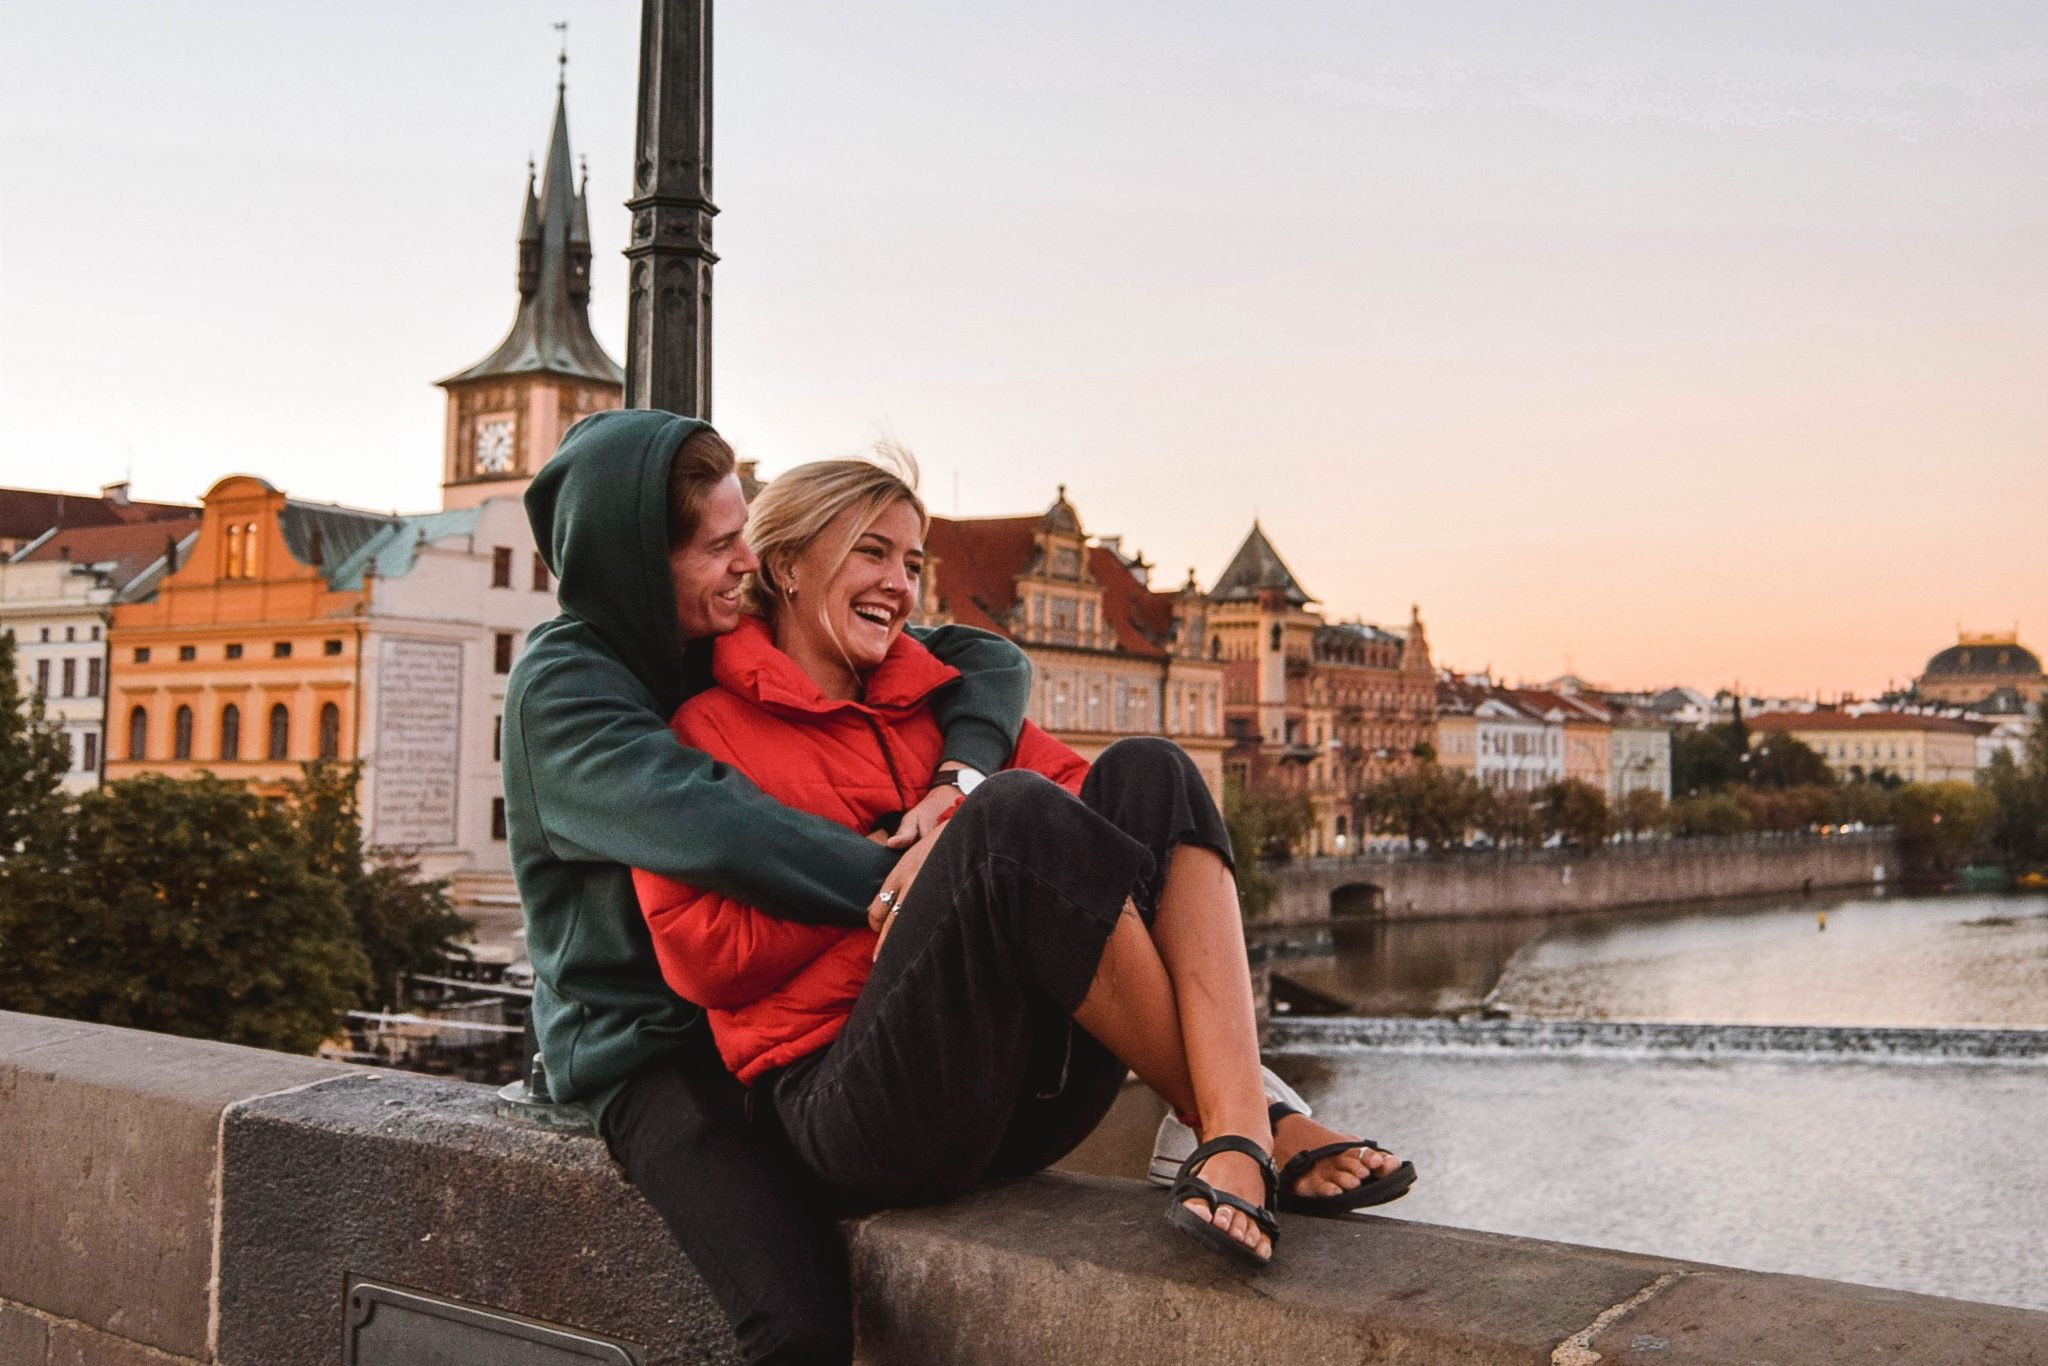 Wanderers & Warriors - Charlie & Lauren UK Travel Couple - Top 9 FUN Things To Do In Prague - What To See In Prague Charles Bridge